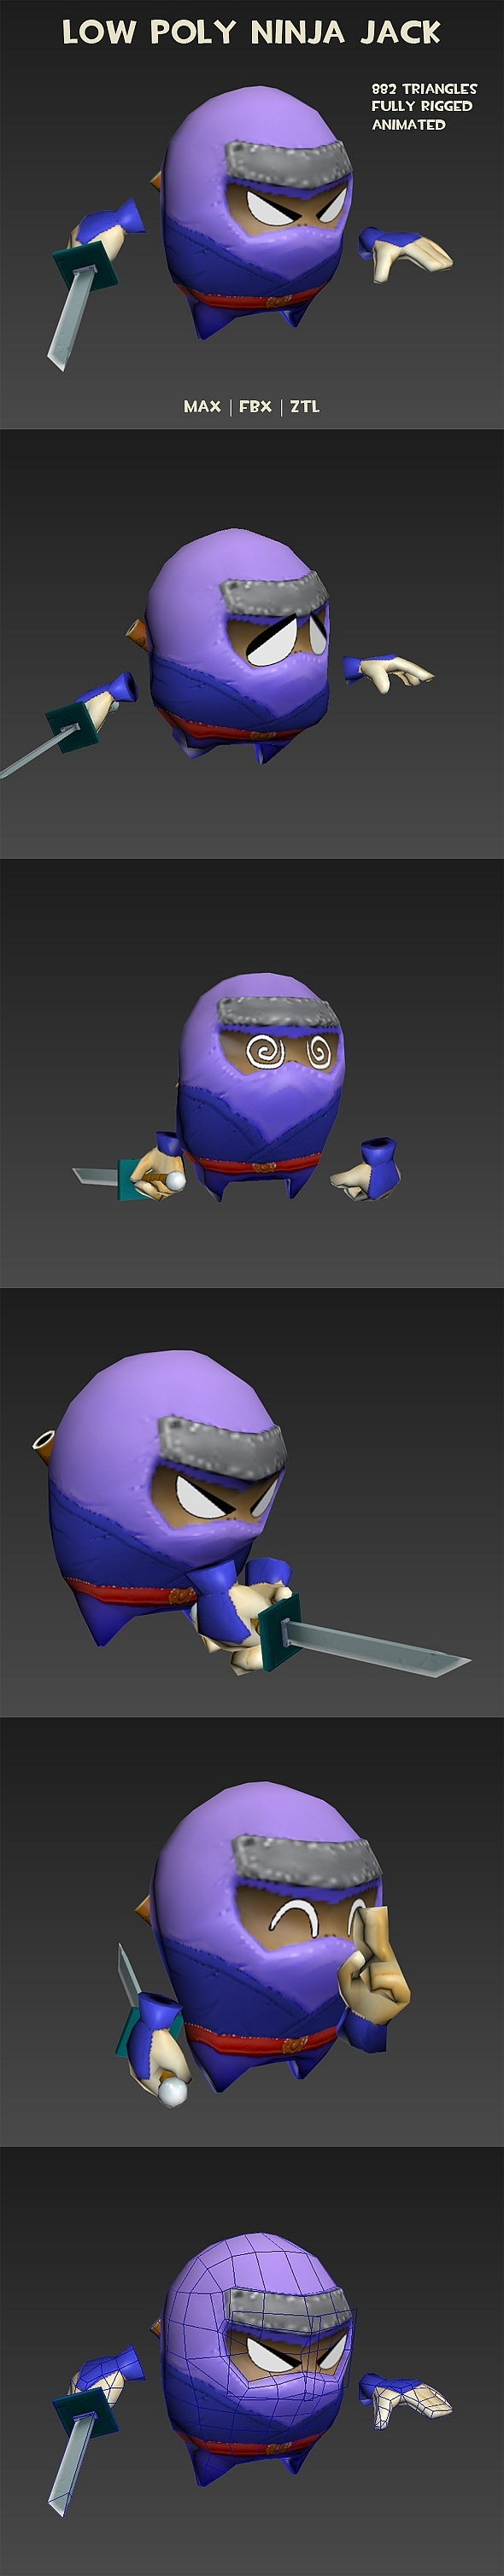 Low poly ninja Jack - animated - 3DOcean Item for Sale